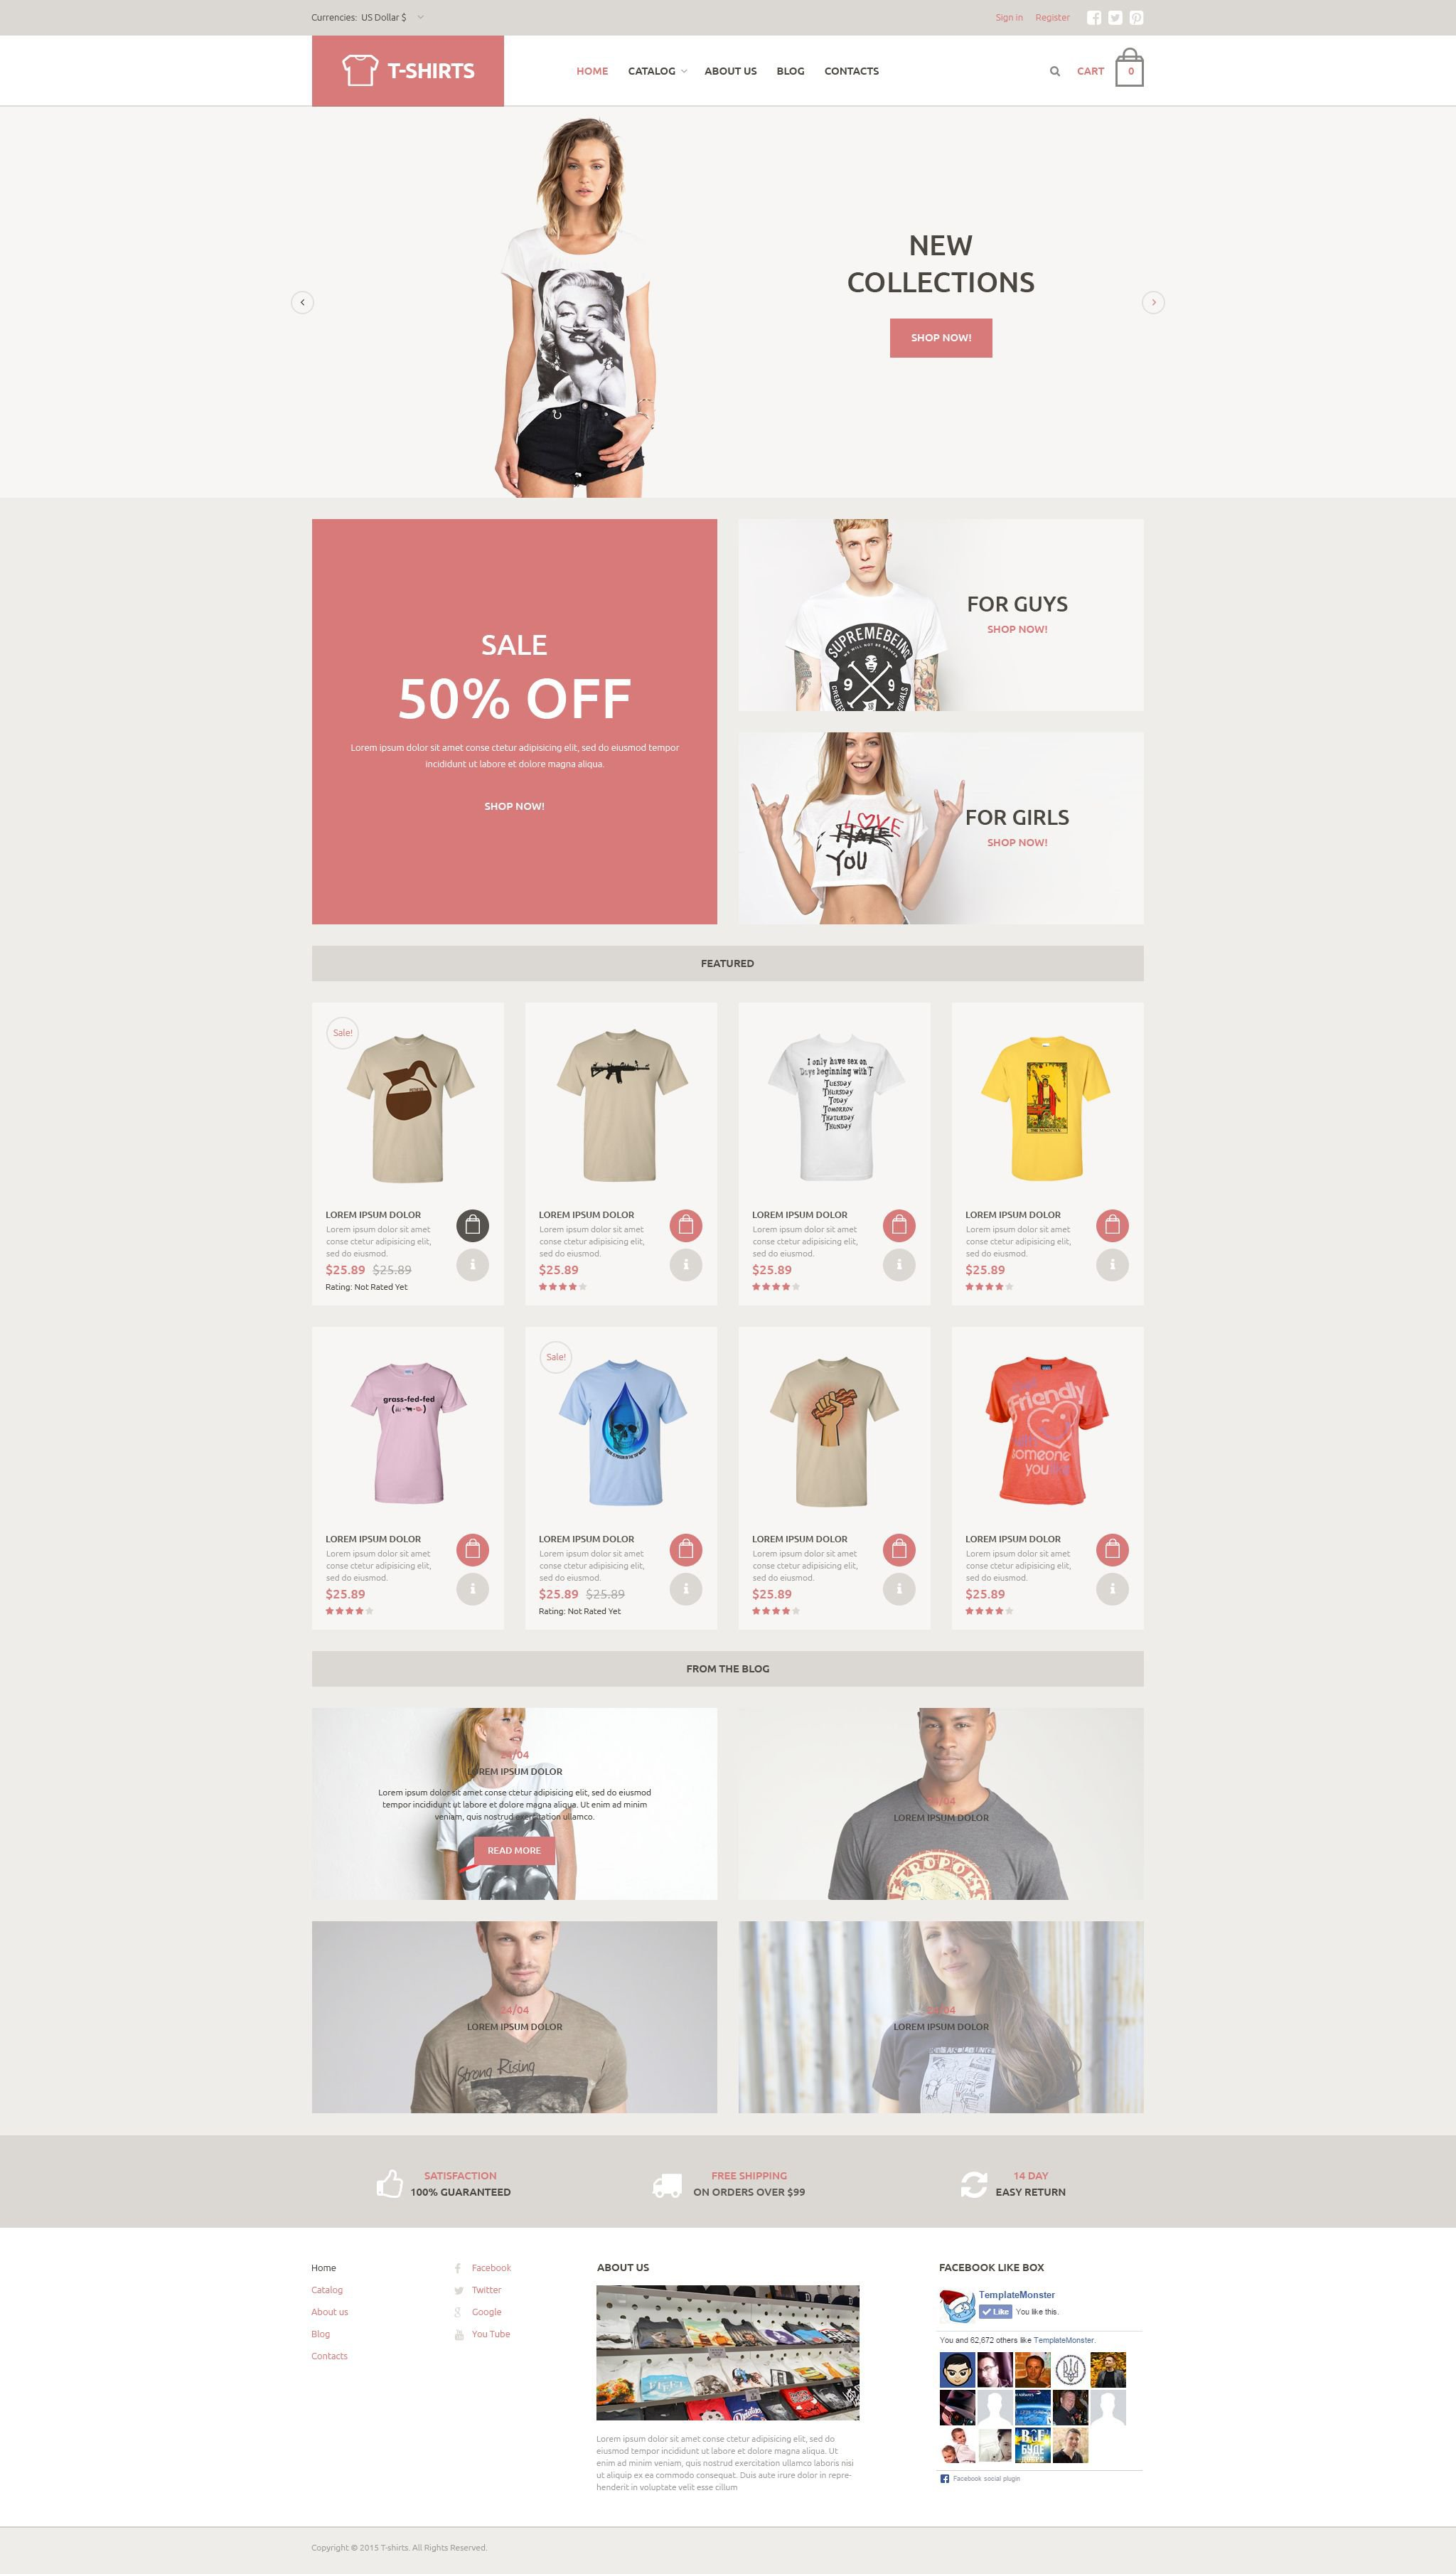 The T-shirts Clothes Online Shop VirtueMart Design 53456, one of the best VirtueMart templates of its kind (fashion, most popular), also known as t-shirts clothes online shop VirtueMart template, fashion VirtueMart template, pant VirtueMart template, sweatshirt VirtueMart template, belt VirtueMart template, accessory VirtueMart template, denim VirtueMart template, outwear VirtueMart template, pajama VirtueMart template, robe VirtueMart template, sweater VirtueMart template, suit VirtueMart template, short VirtueMart template, underwear VirtueMart template, socks VirtueMart template, wallet VirtueMart template, t-shirt VirtueMart template, jeans VirtueMart template, jacket VirtueMart template, pullover VirtueMart template, swimsuit VirtueMart template, thong VirtueMart template, coverall VirtueMart template, bag VirtueMart template, shoes VirtueMart template, dress VirtueMart template, tie VirtueMart template, brassier VirtueMart template, prices VirtueMart template, eye VirtueMart template, wear VirtueMart template, perfumes and related with t-shirts clothes online shop, fashion, pant, sweatshirt, belt, accessory, denim, outwear, pajama, robe, sweater, suit, short, underwear, socks, wallet, t-shirt, jeans, jacket, pullover, swimsuit, thong, coverall, bag, shoes, dress, tie, brassier, prices, eye, wear, perfumes, etc.